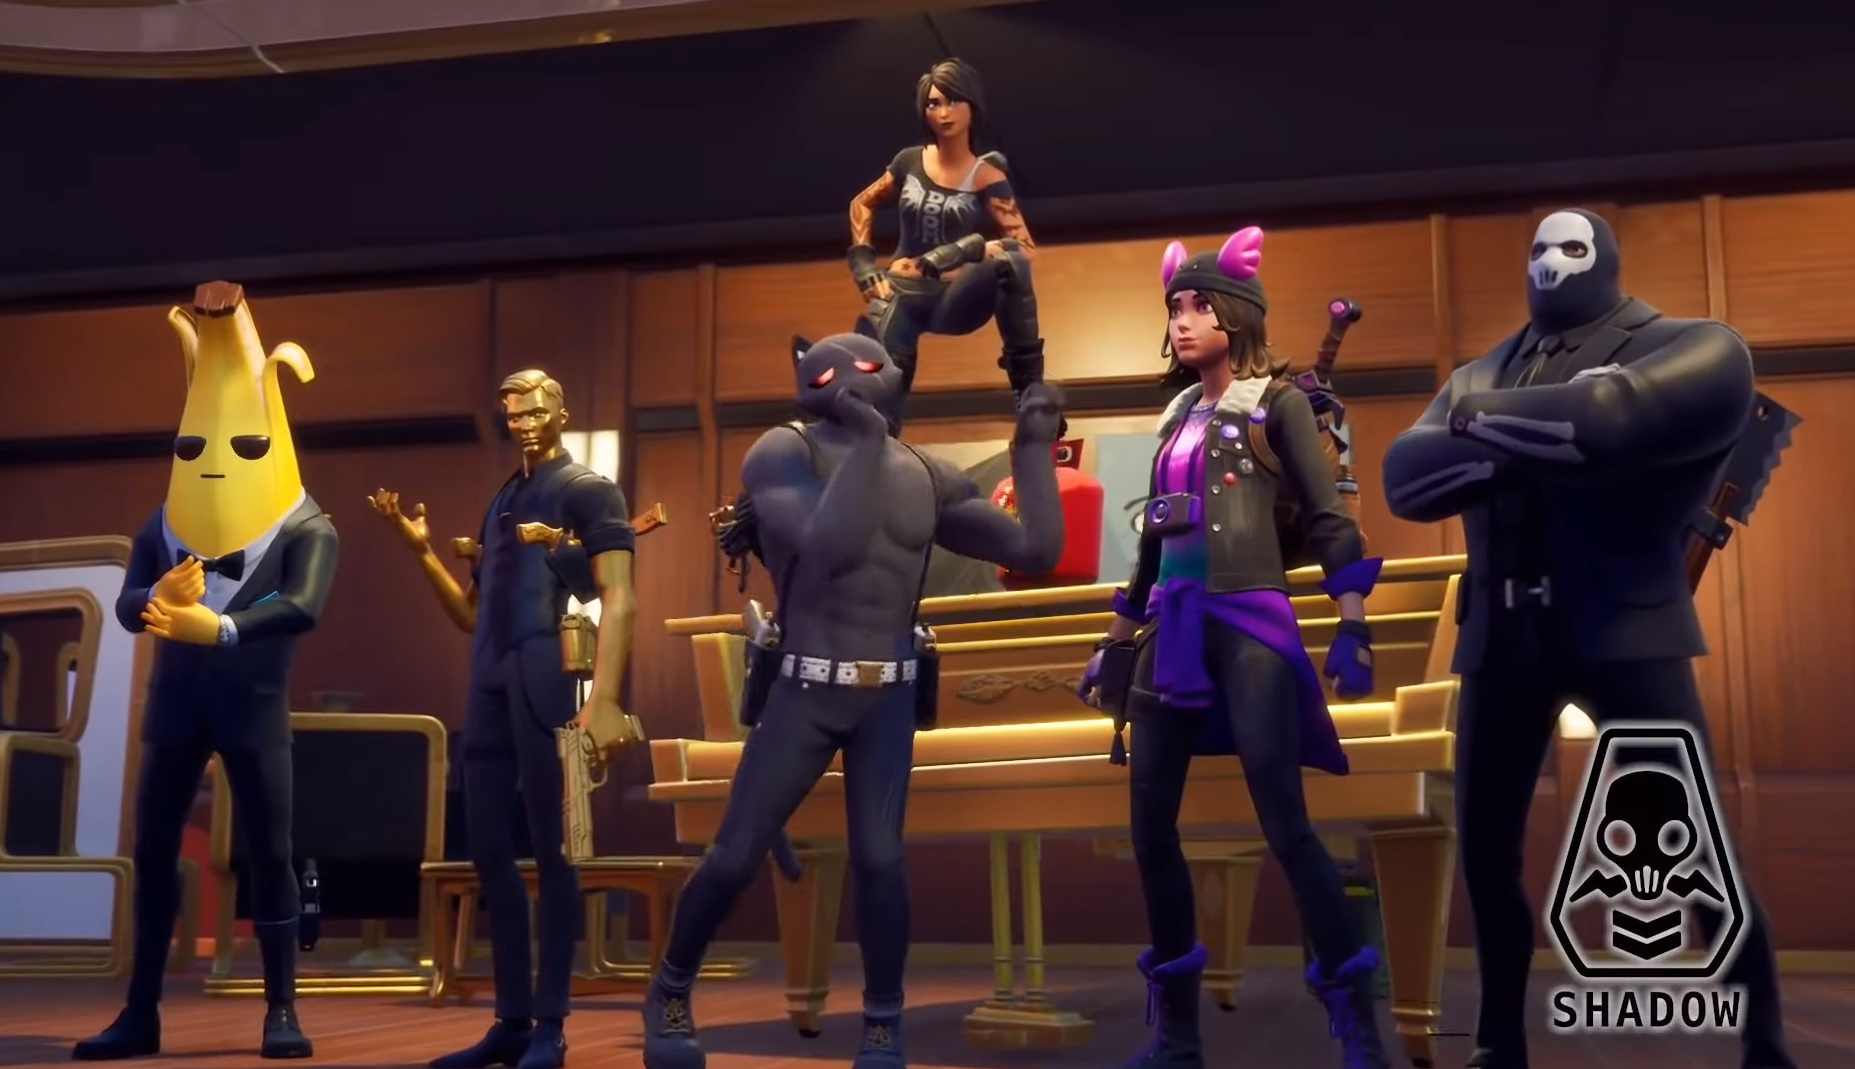 New Fortnite Season 2 Skins: Meowscles, Midas, Maya and more revealed in Battle Pass trailer - VG247